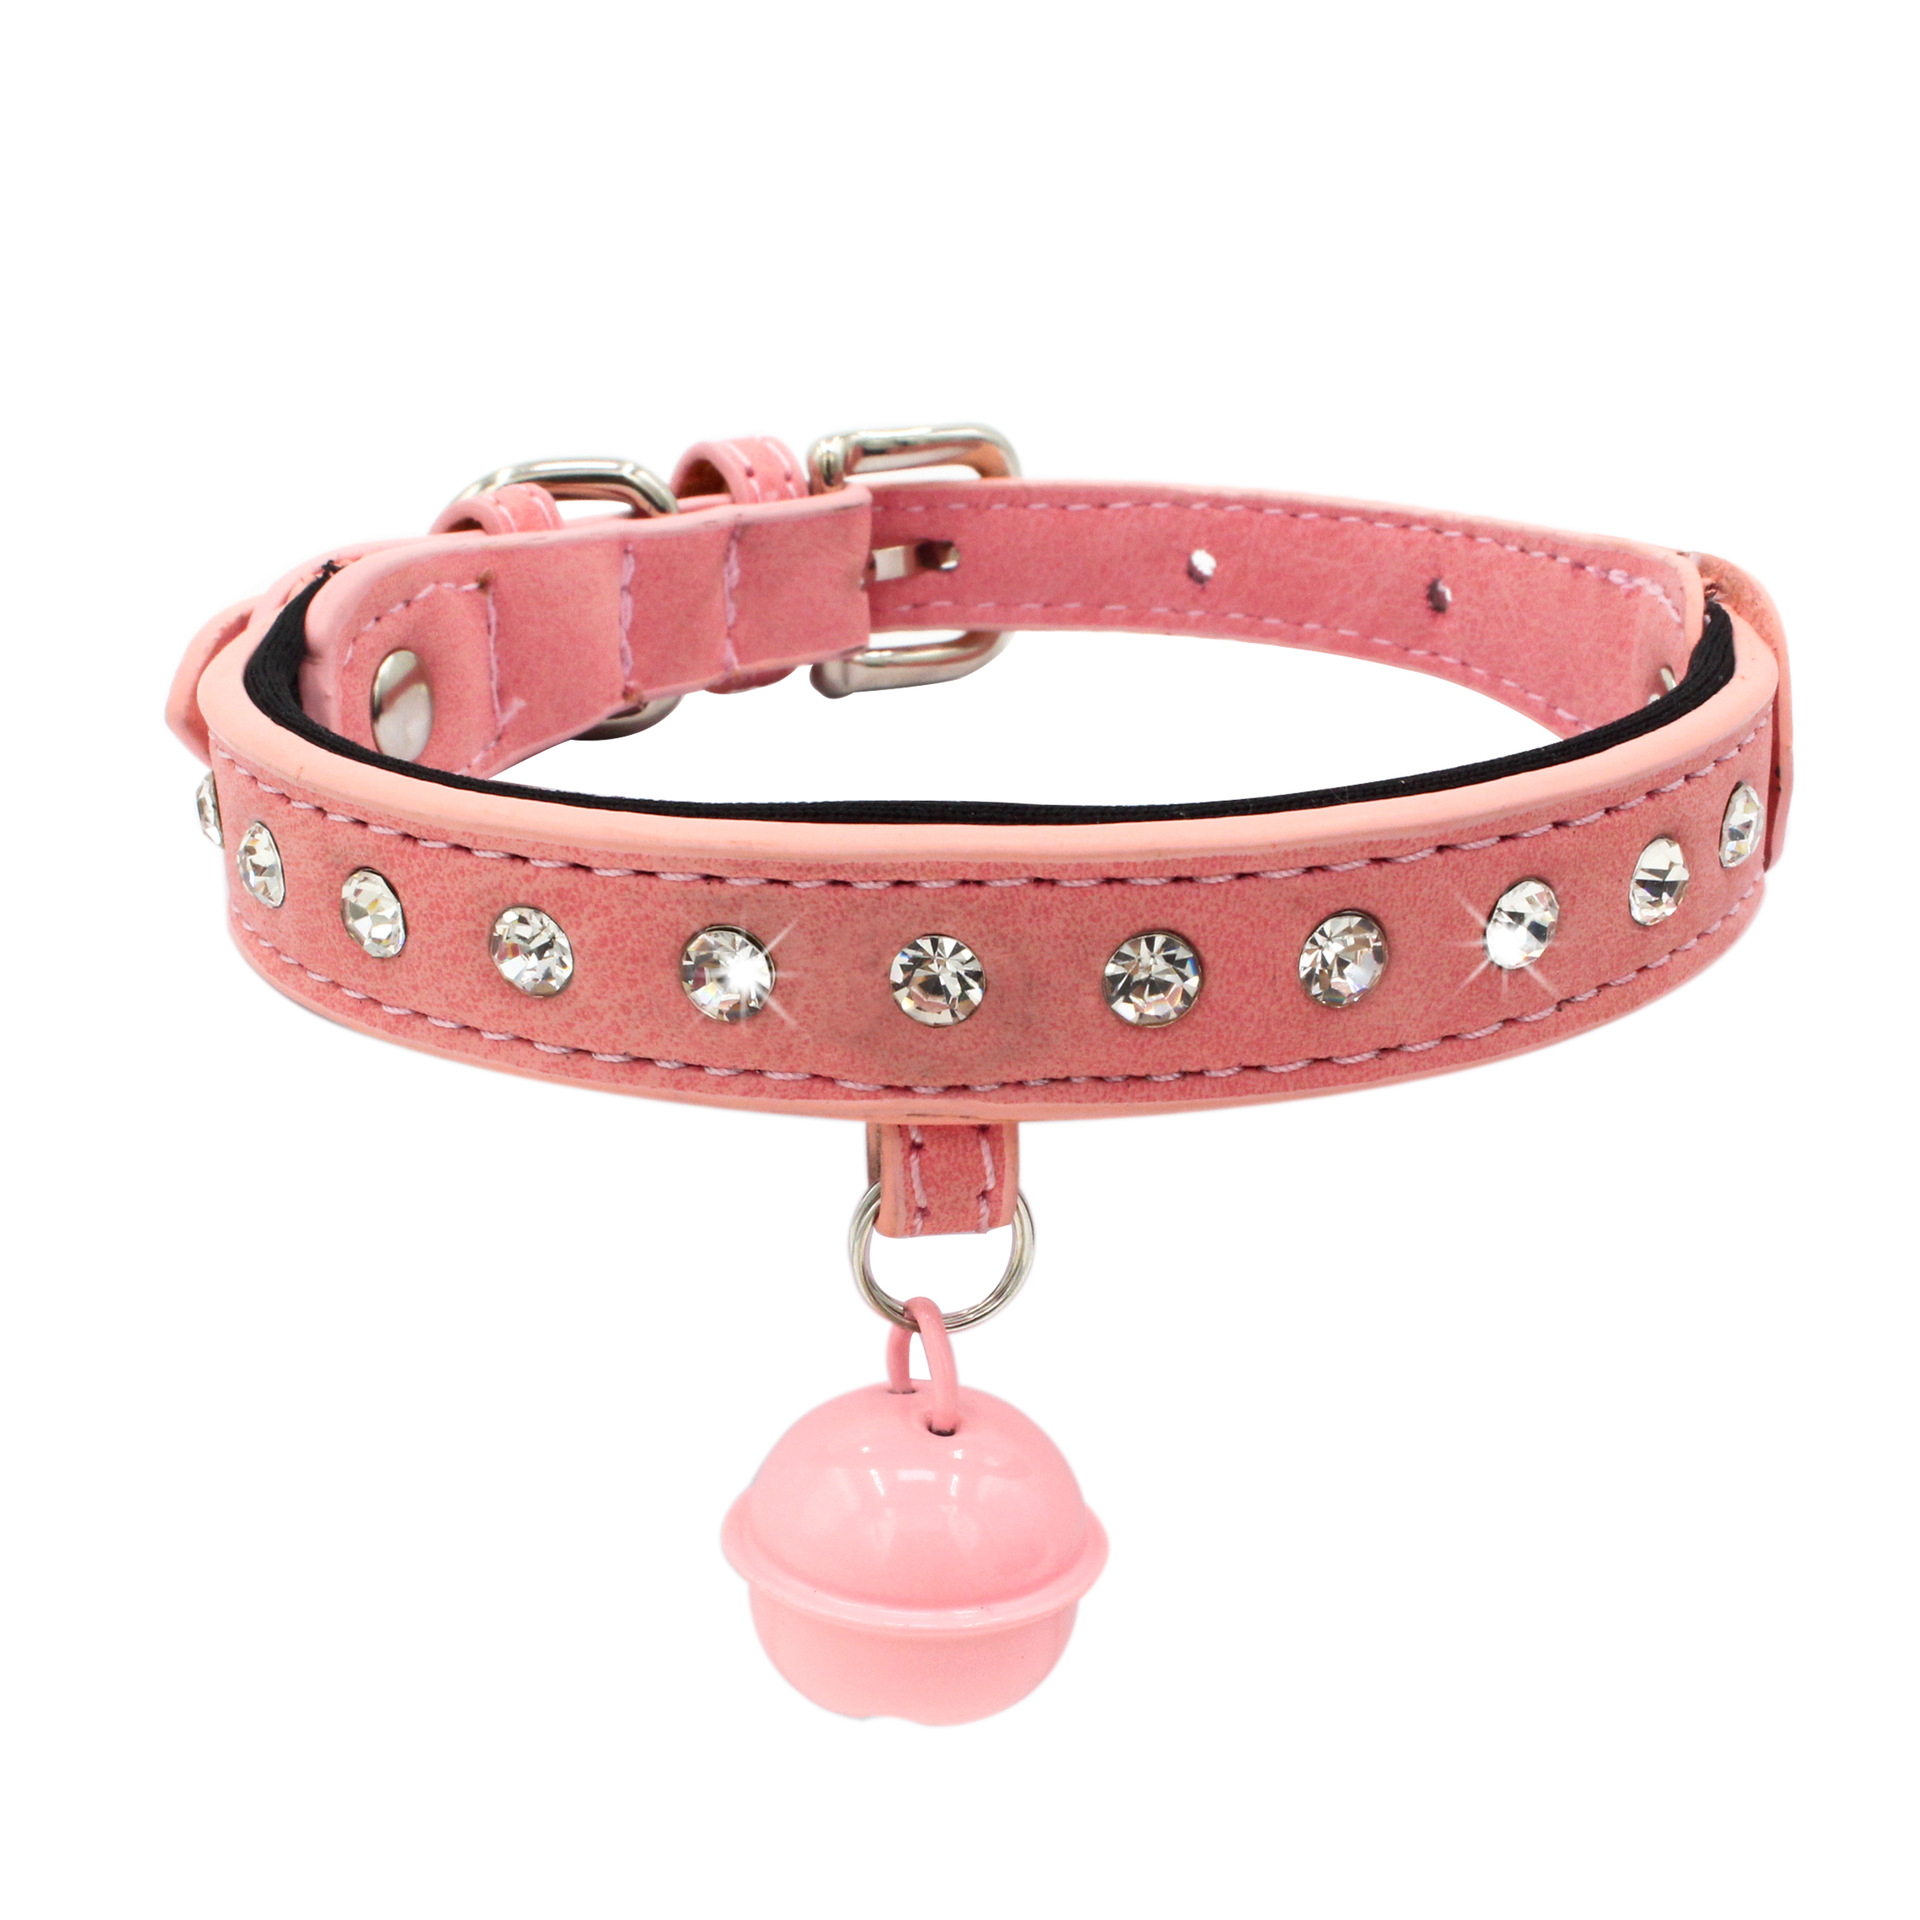 Jin Ling Jie Shiny Man-made Diamond Pet Collar Bell Dog Neck Ring Diving Cloth Lining Dog Chain Double Layer Hide Substance Dog